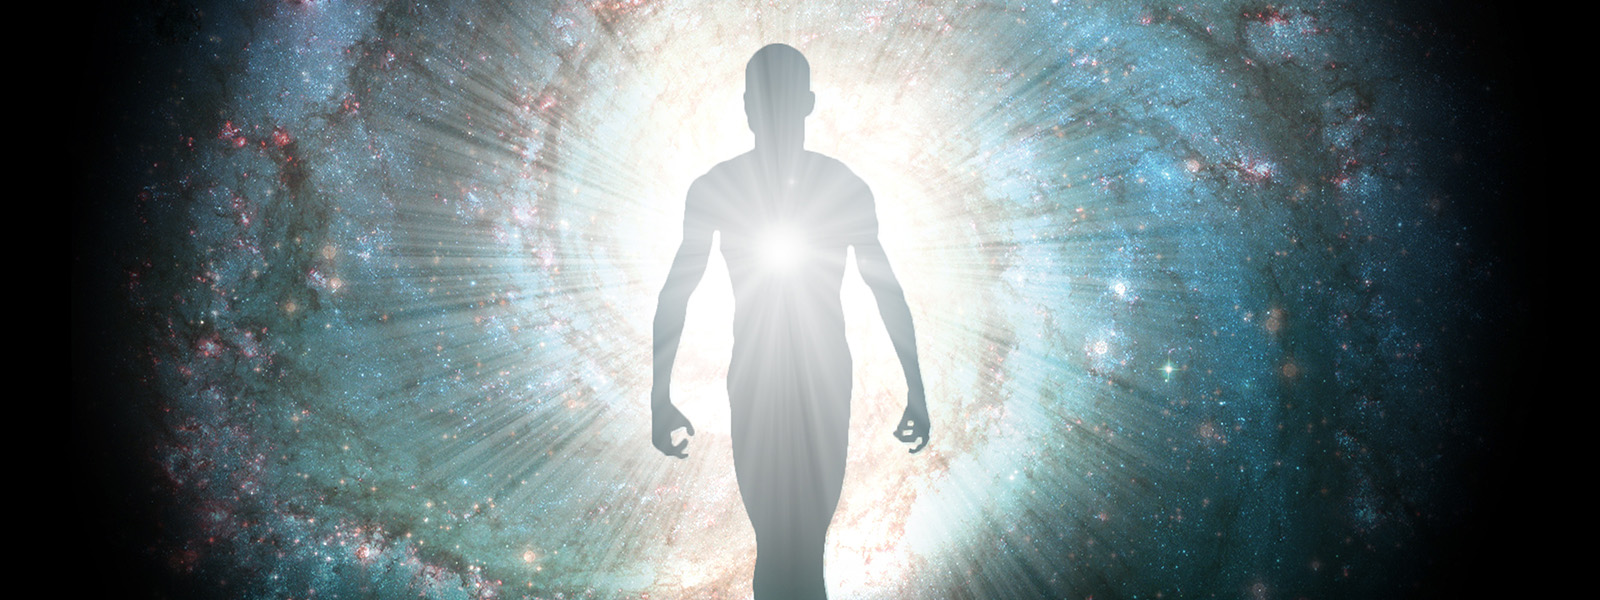 Consciousness Beyond the Body: Evidence and Reflections